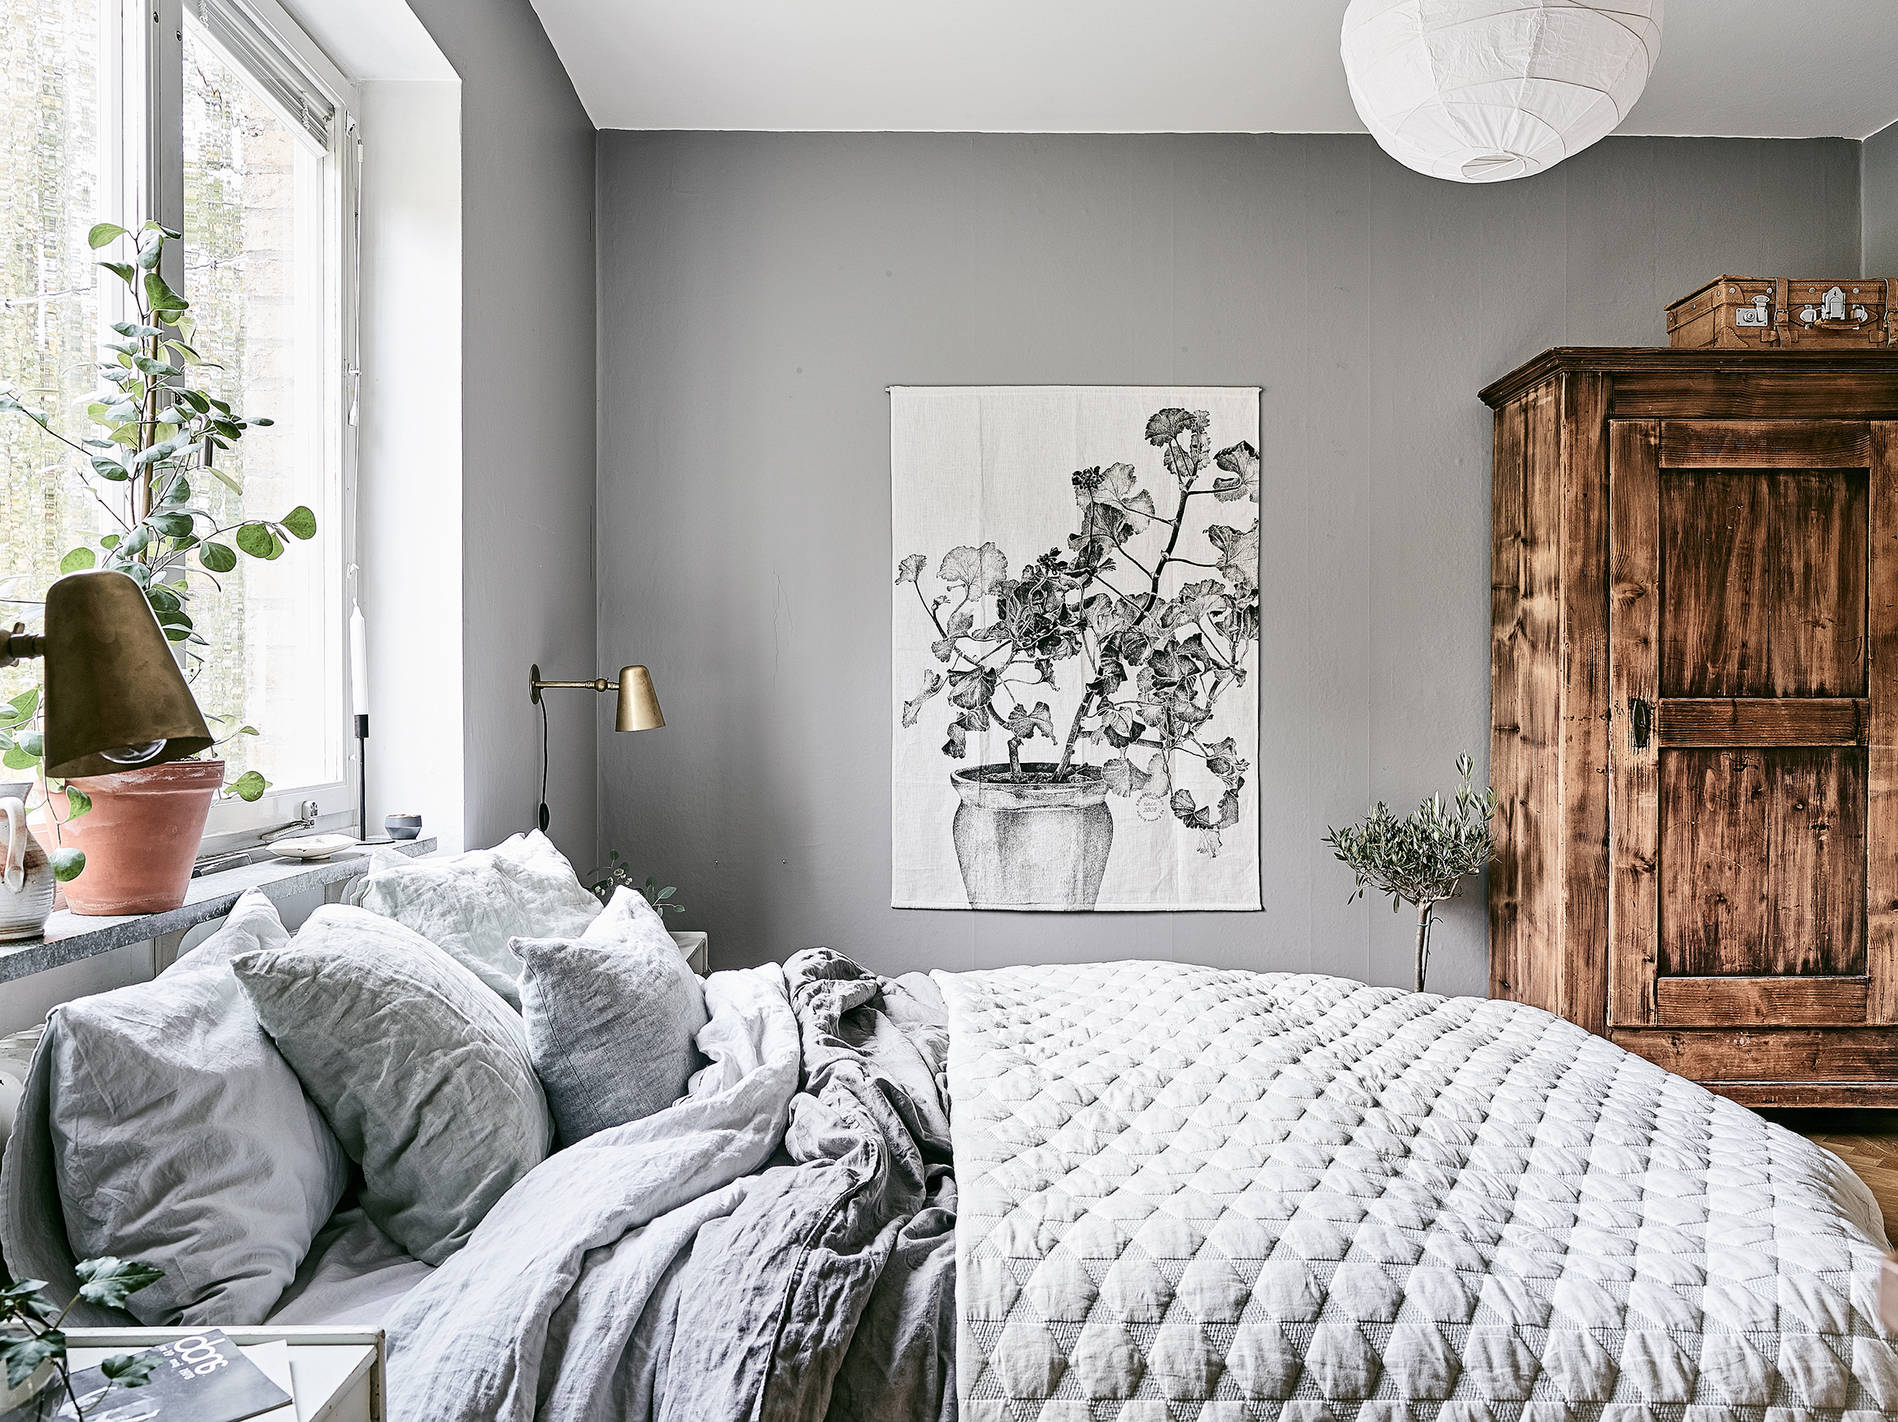 Cozy Bedroom In Grey Coco Lapine Designcoco Lapine Design: bedroom ideas grey walls